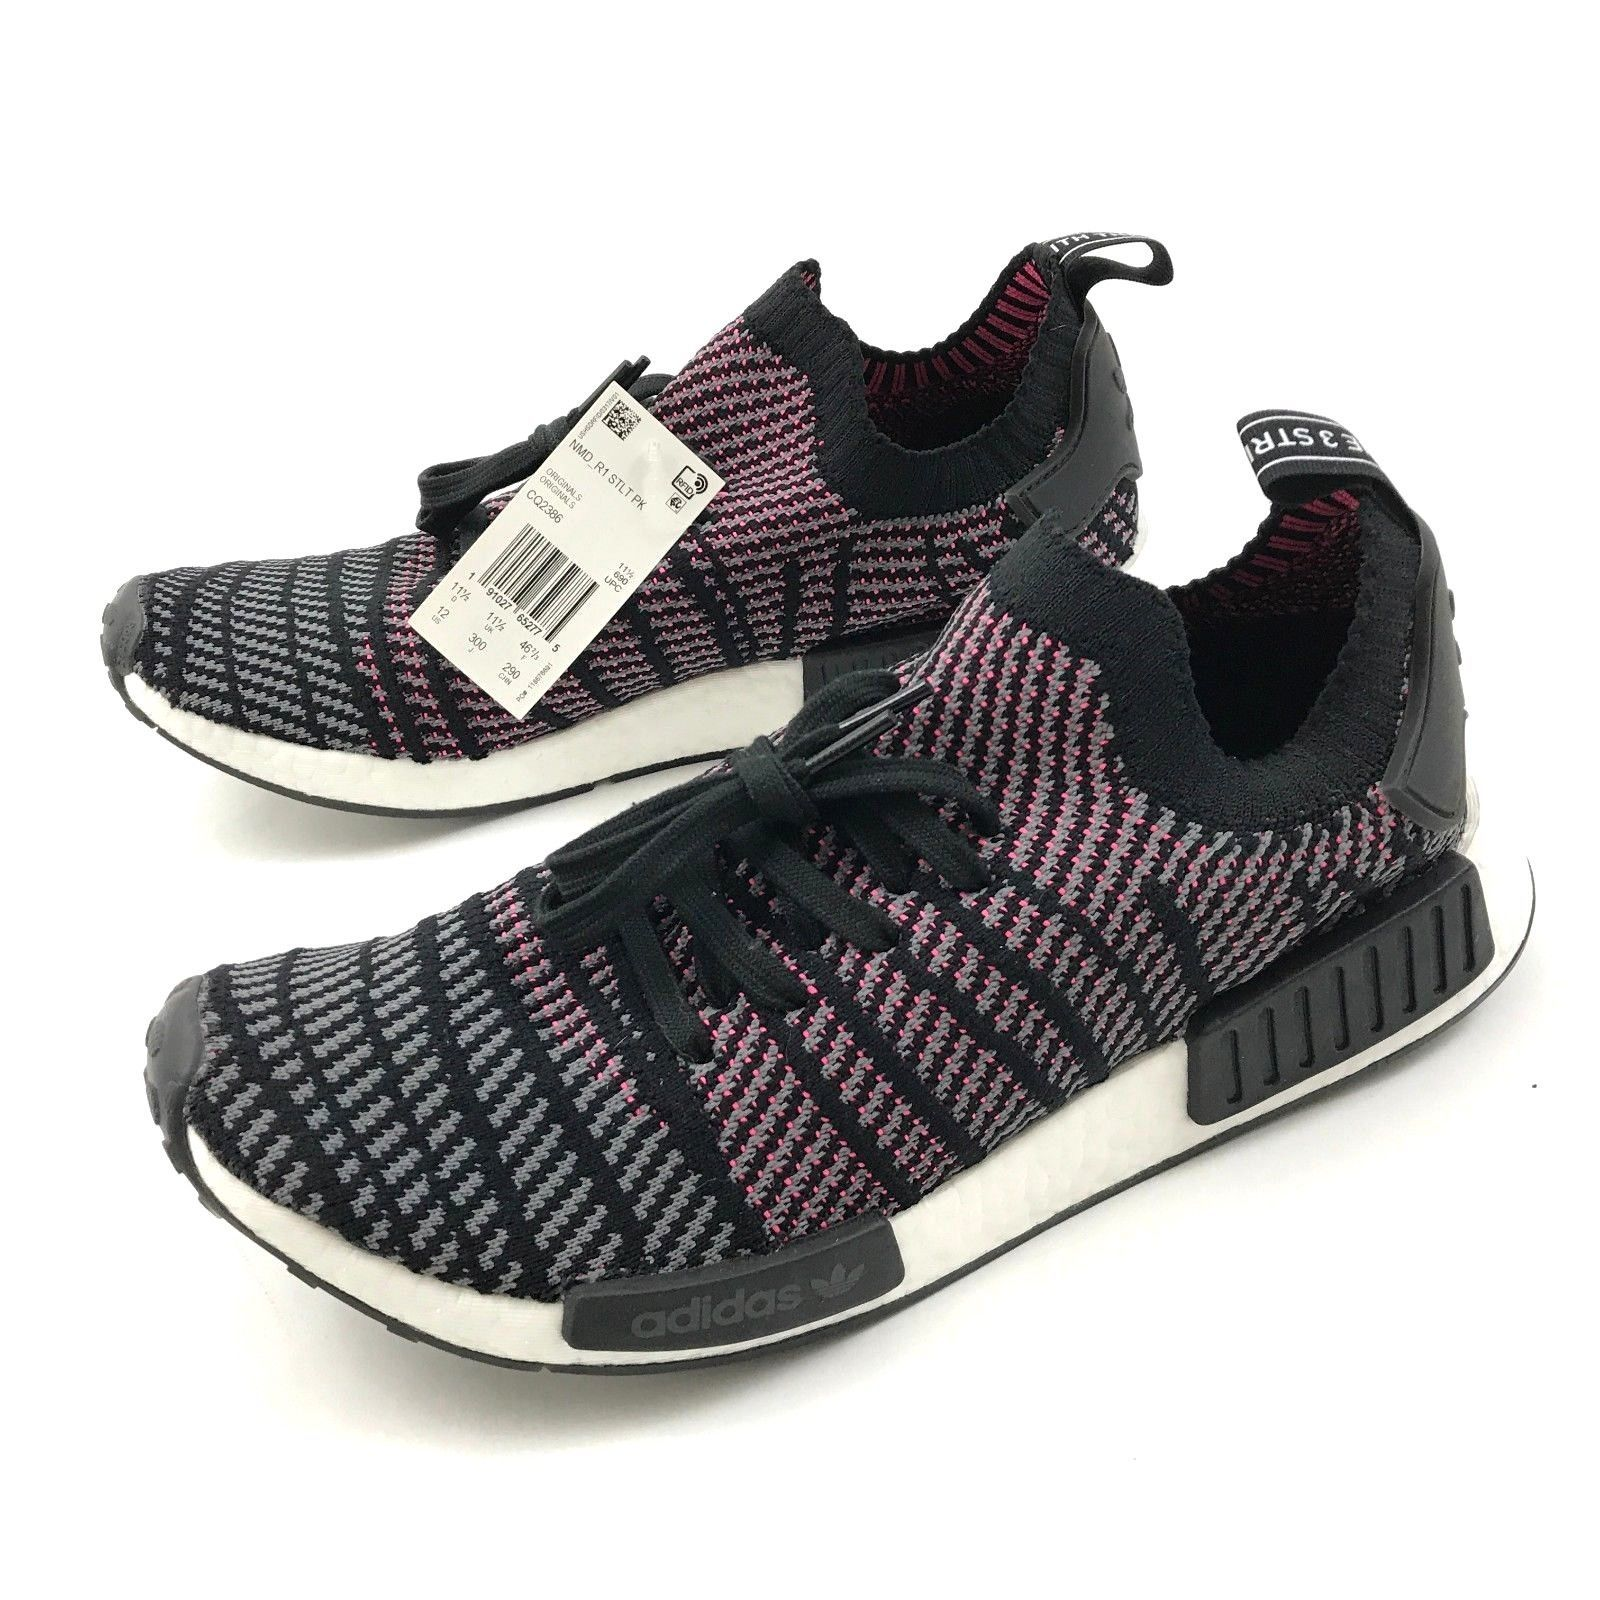 san francisco c9716 0355a Adidas Augmentation Nmd R1 Chaussures Hommes and 50 similar items